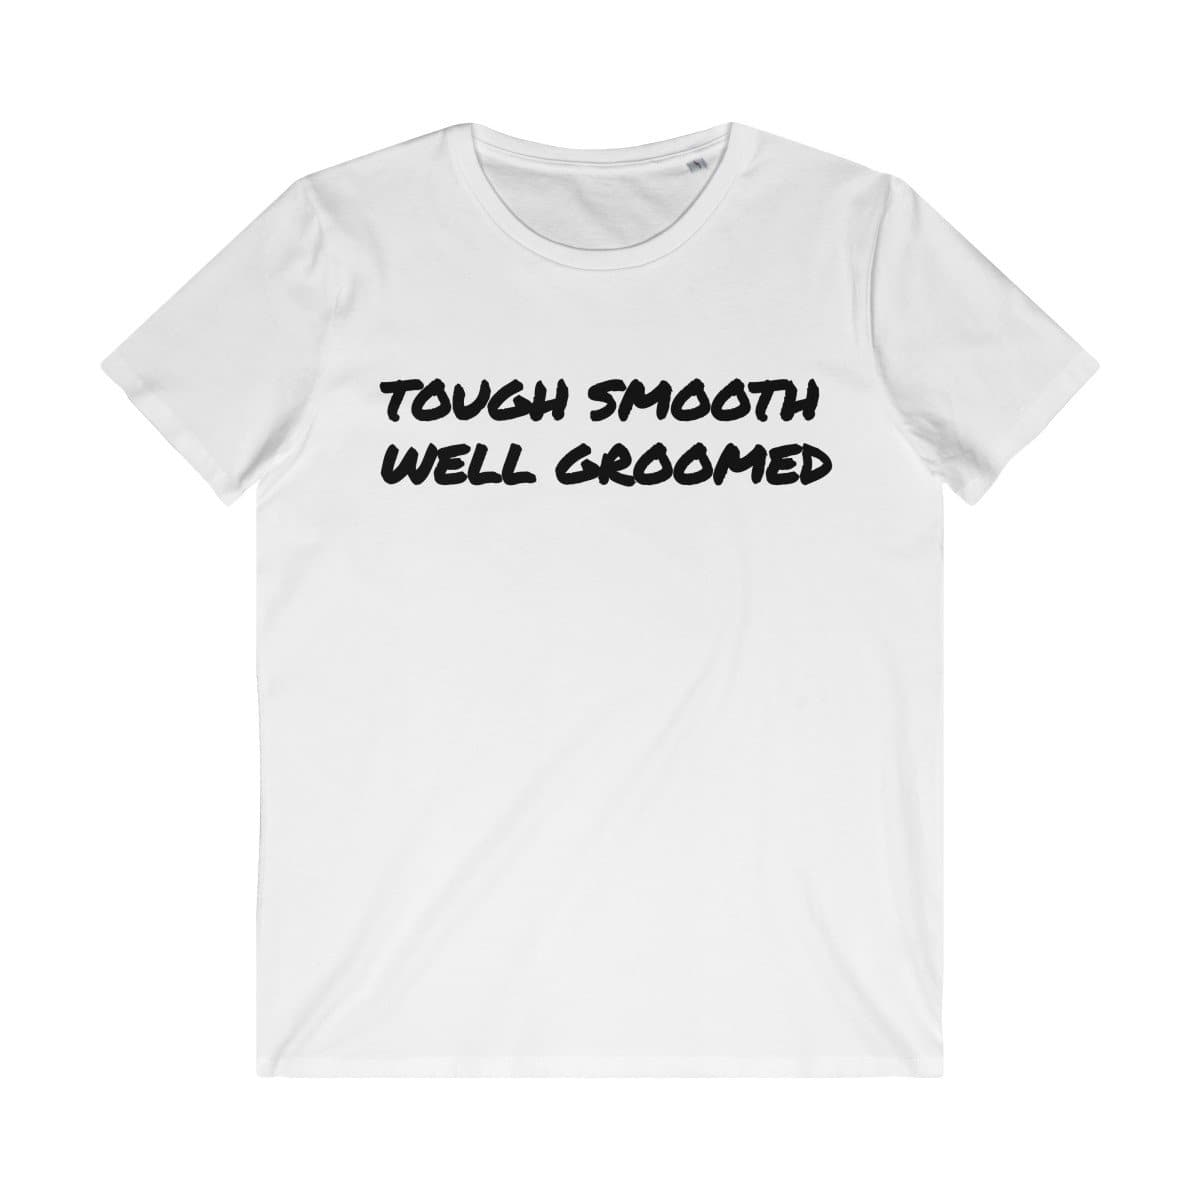 TSWG ( Tough Smooth Well Groomed) Men's Organic Tee - Tie-Fly